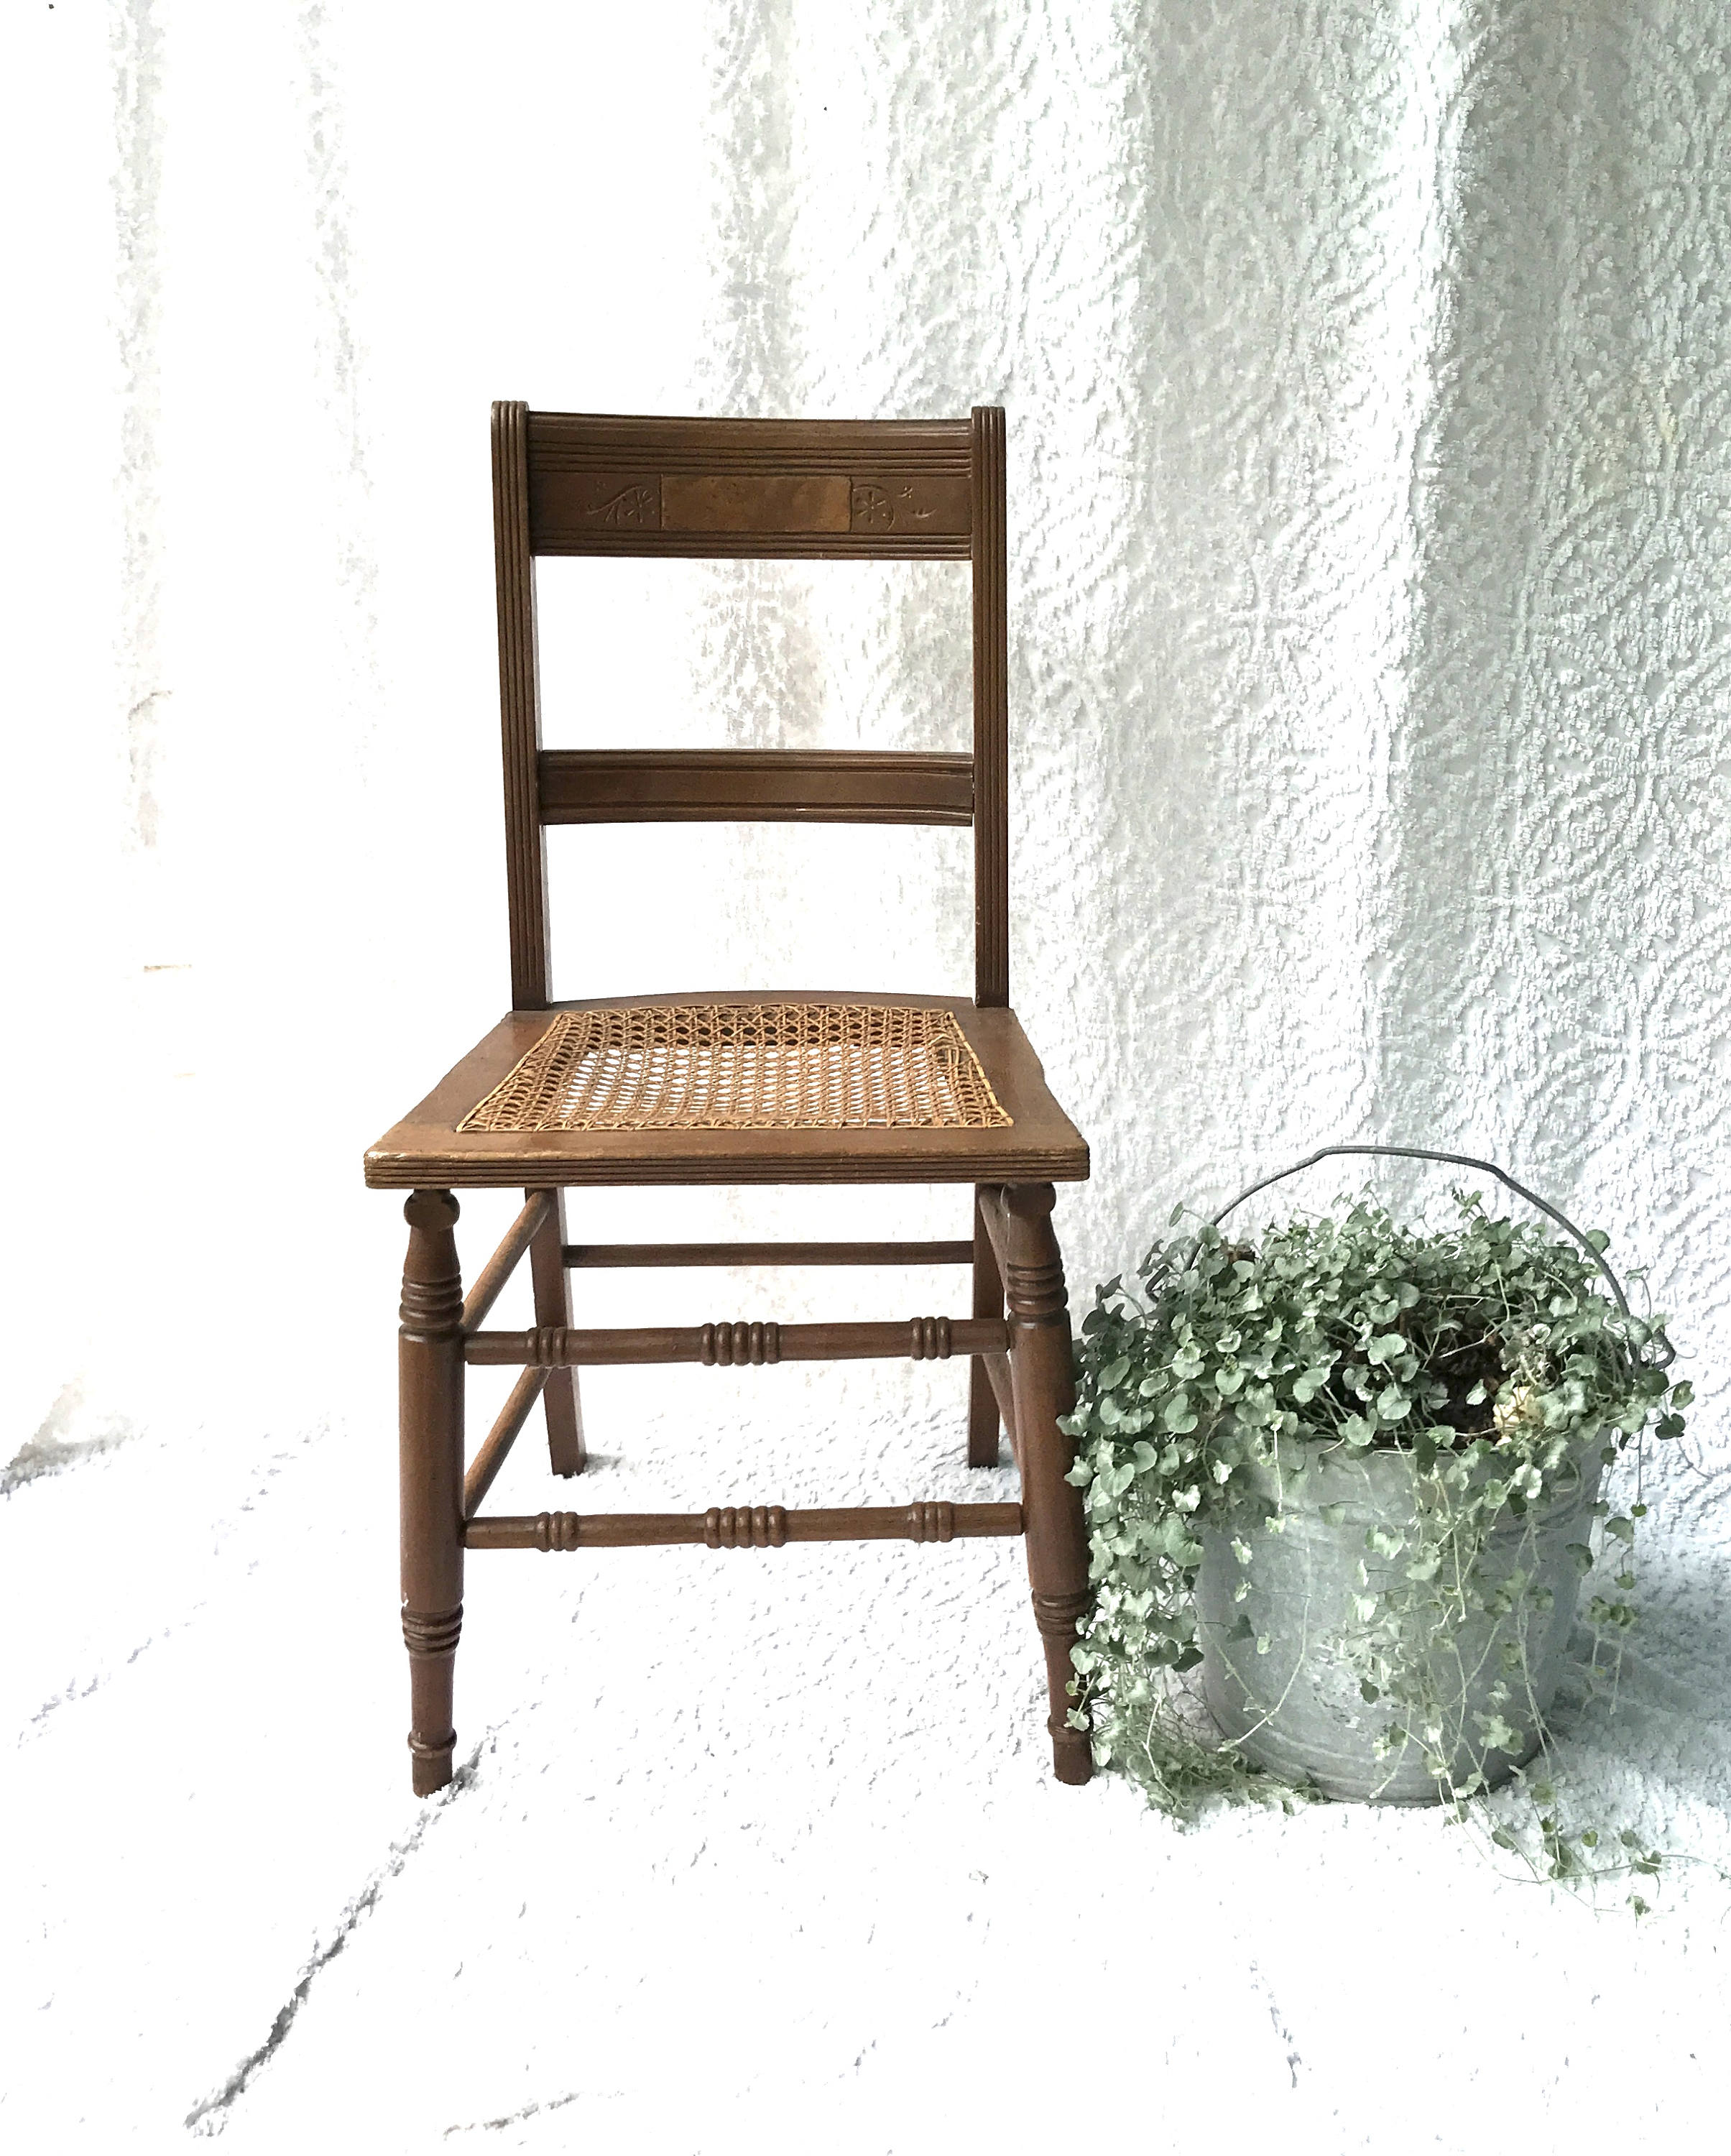 Vintage Wooden Kitchen Chairs: Vintage Wooden Cane Chair Caned Bottom Wood Chair Kitchen